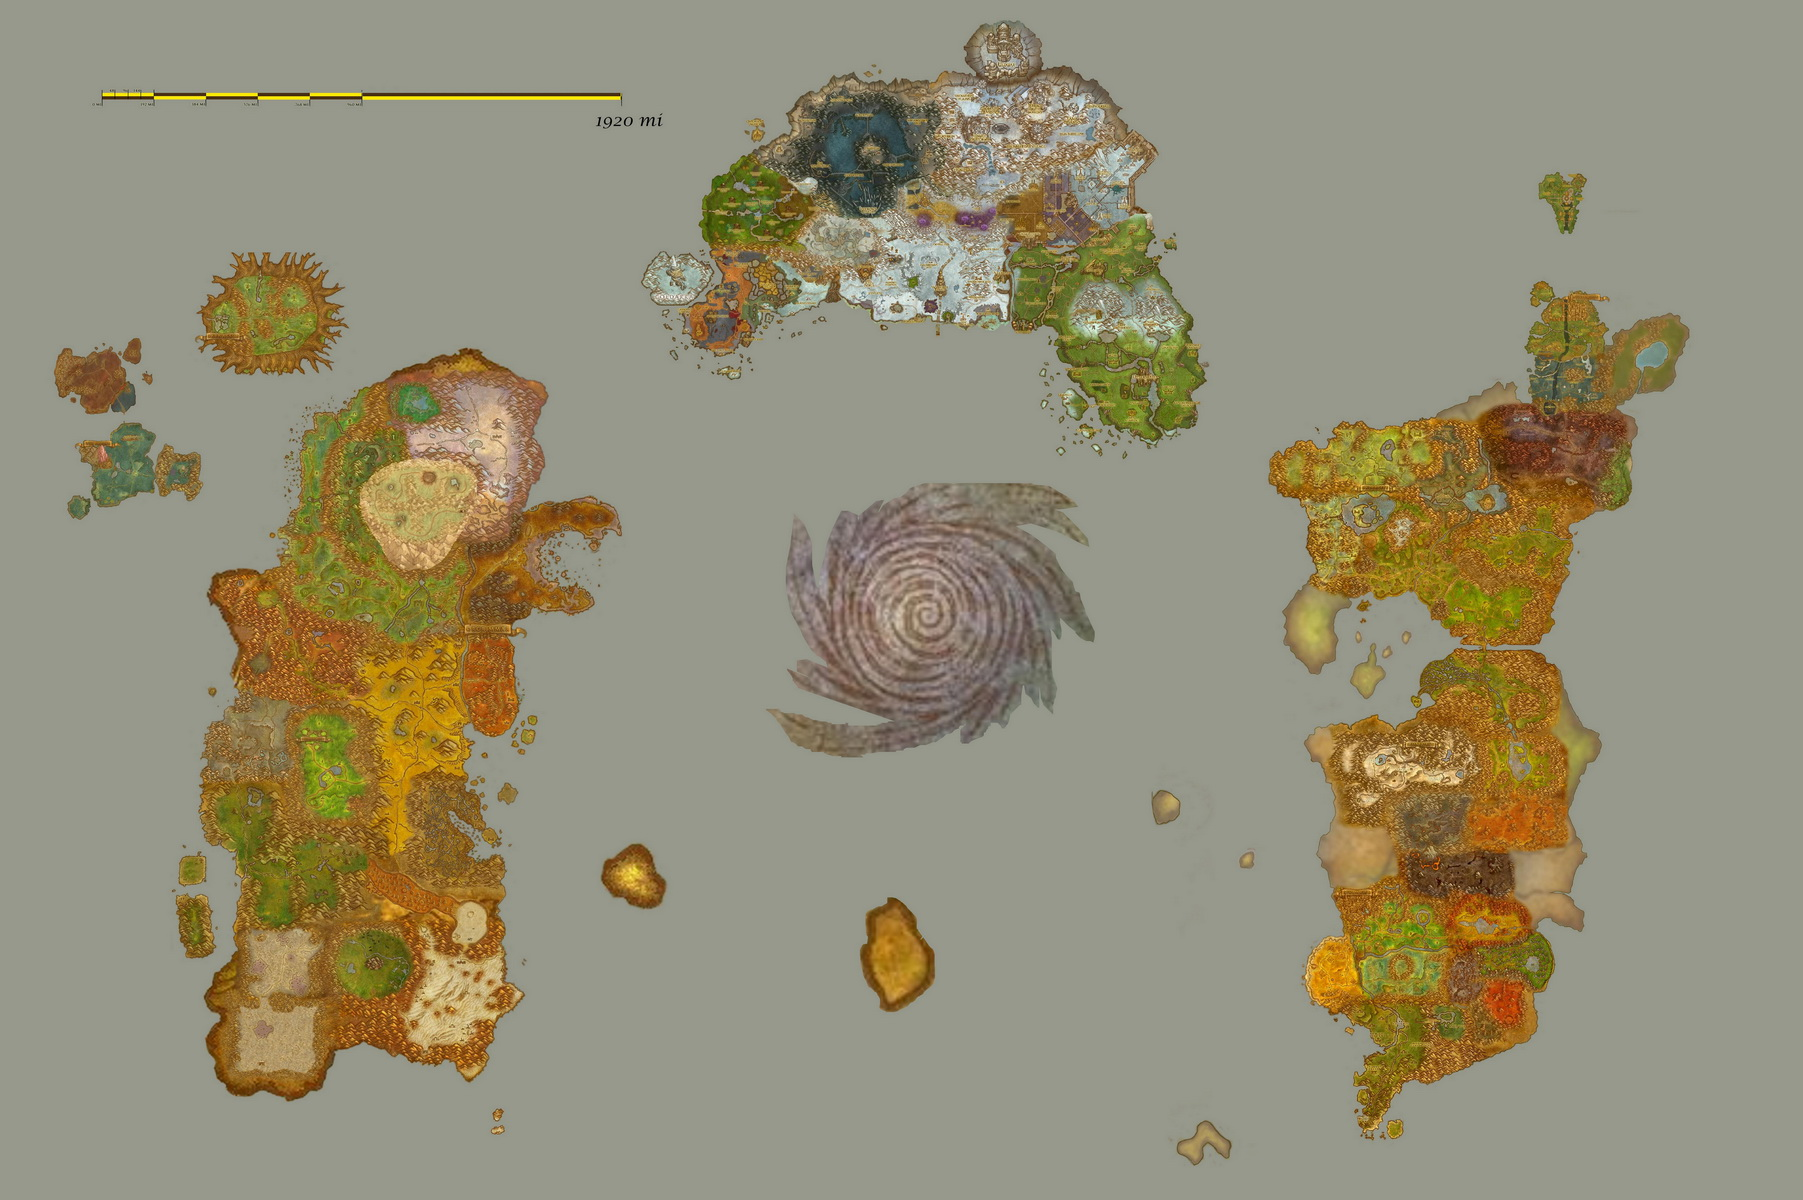 Azeroth world wowwiki fandom powered by wikia world of warcraft gumiabroncs Choice Image